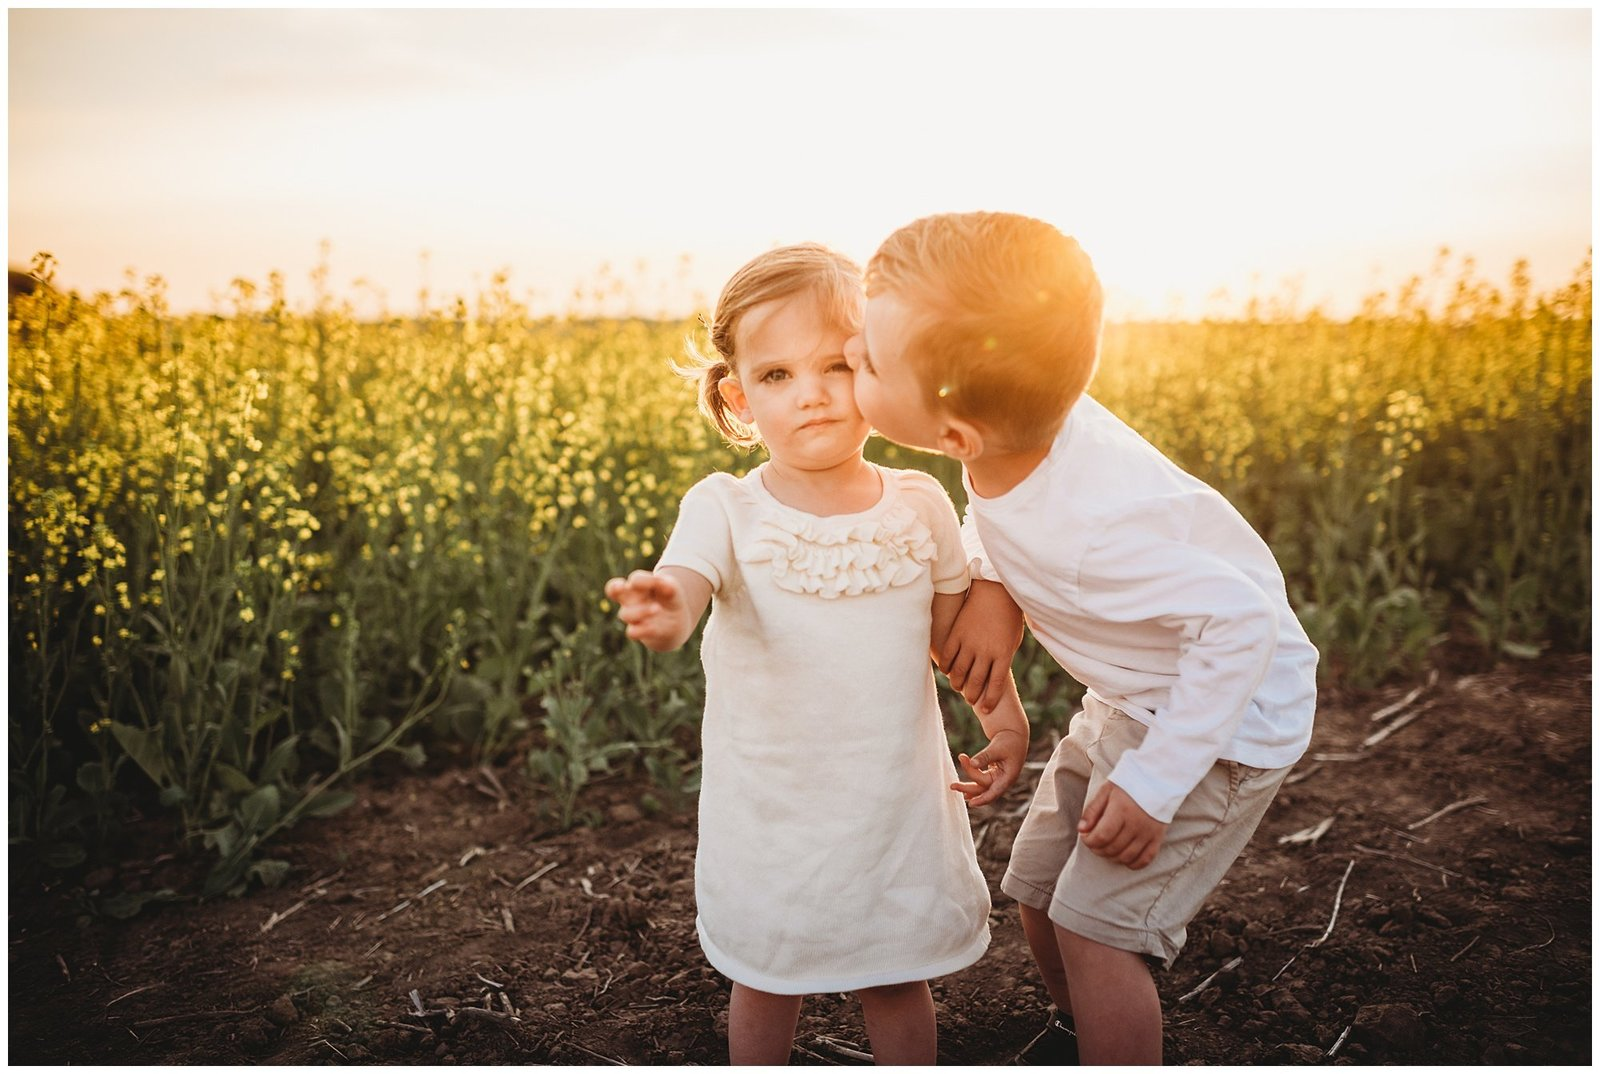 big brother kissing baby sister in field at sunset Emily Ann Photography Seattle Family Photographer